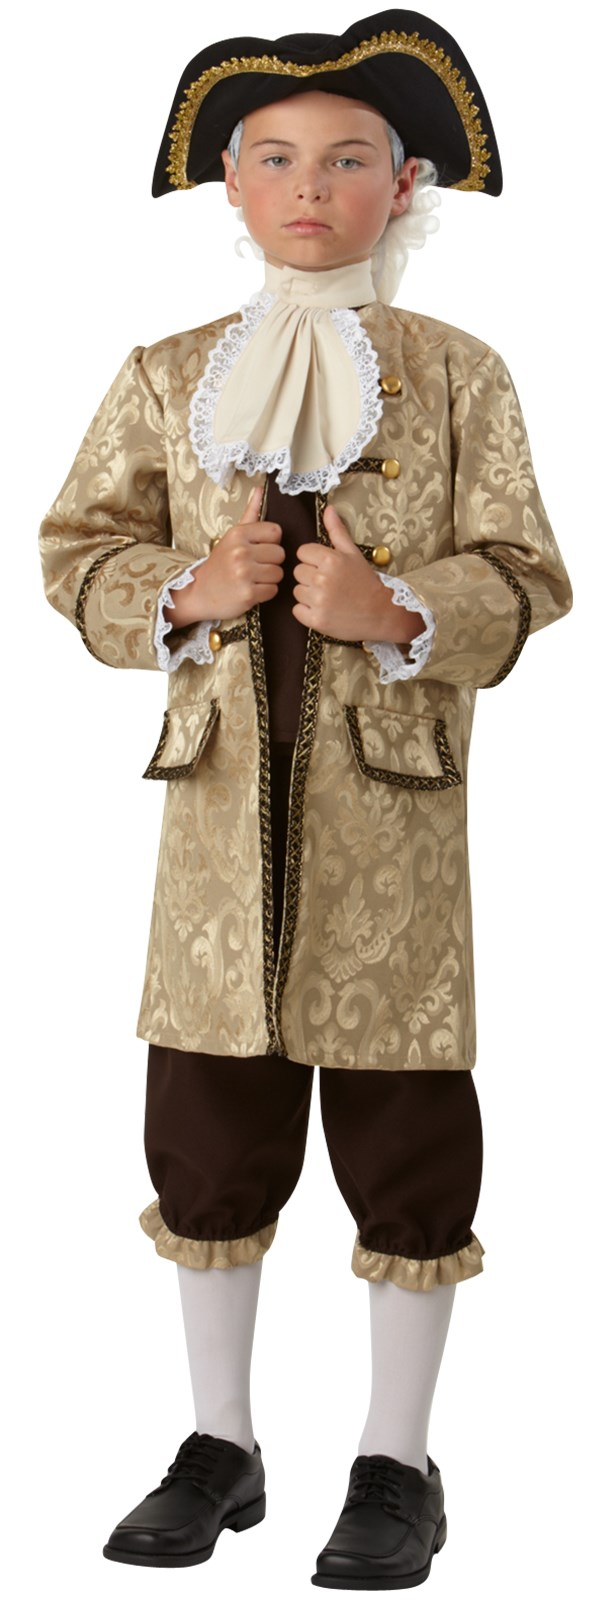 Image of Colonial Boy Child Costume